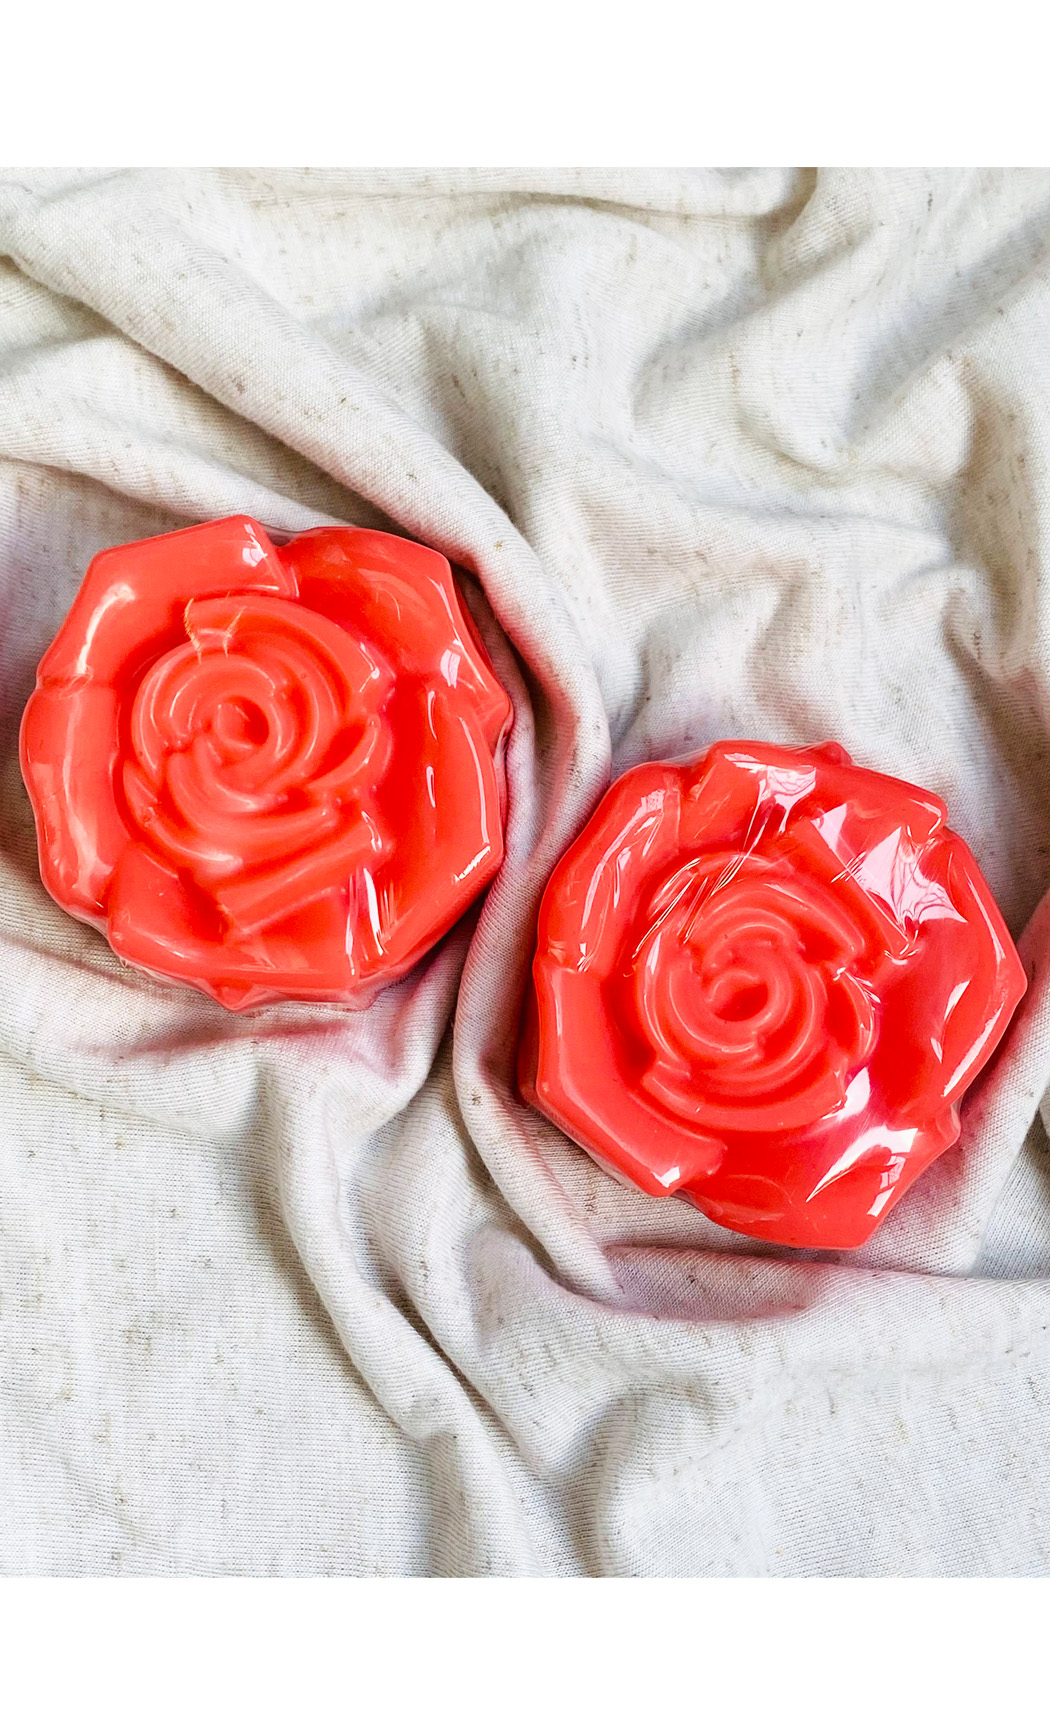 Love is in the air Rose Soap Bar. Buy Online